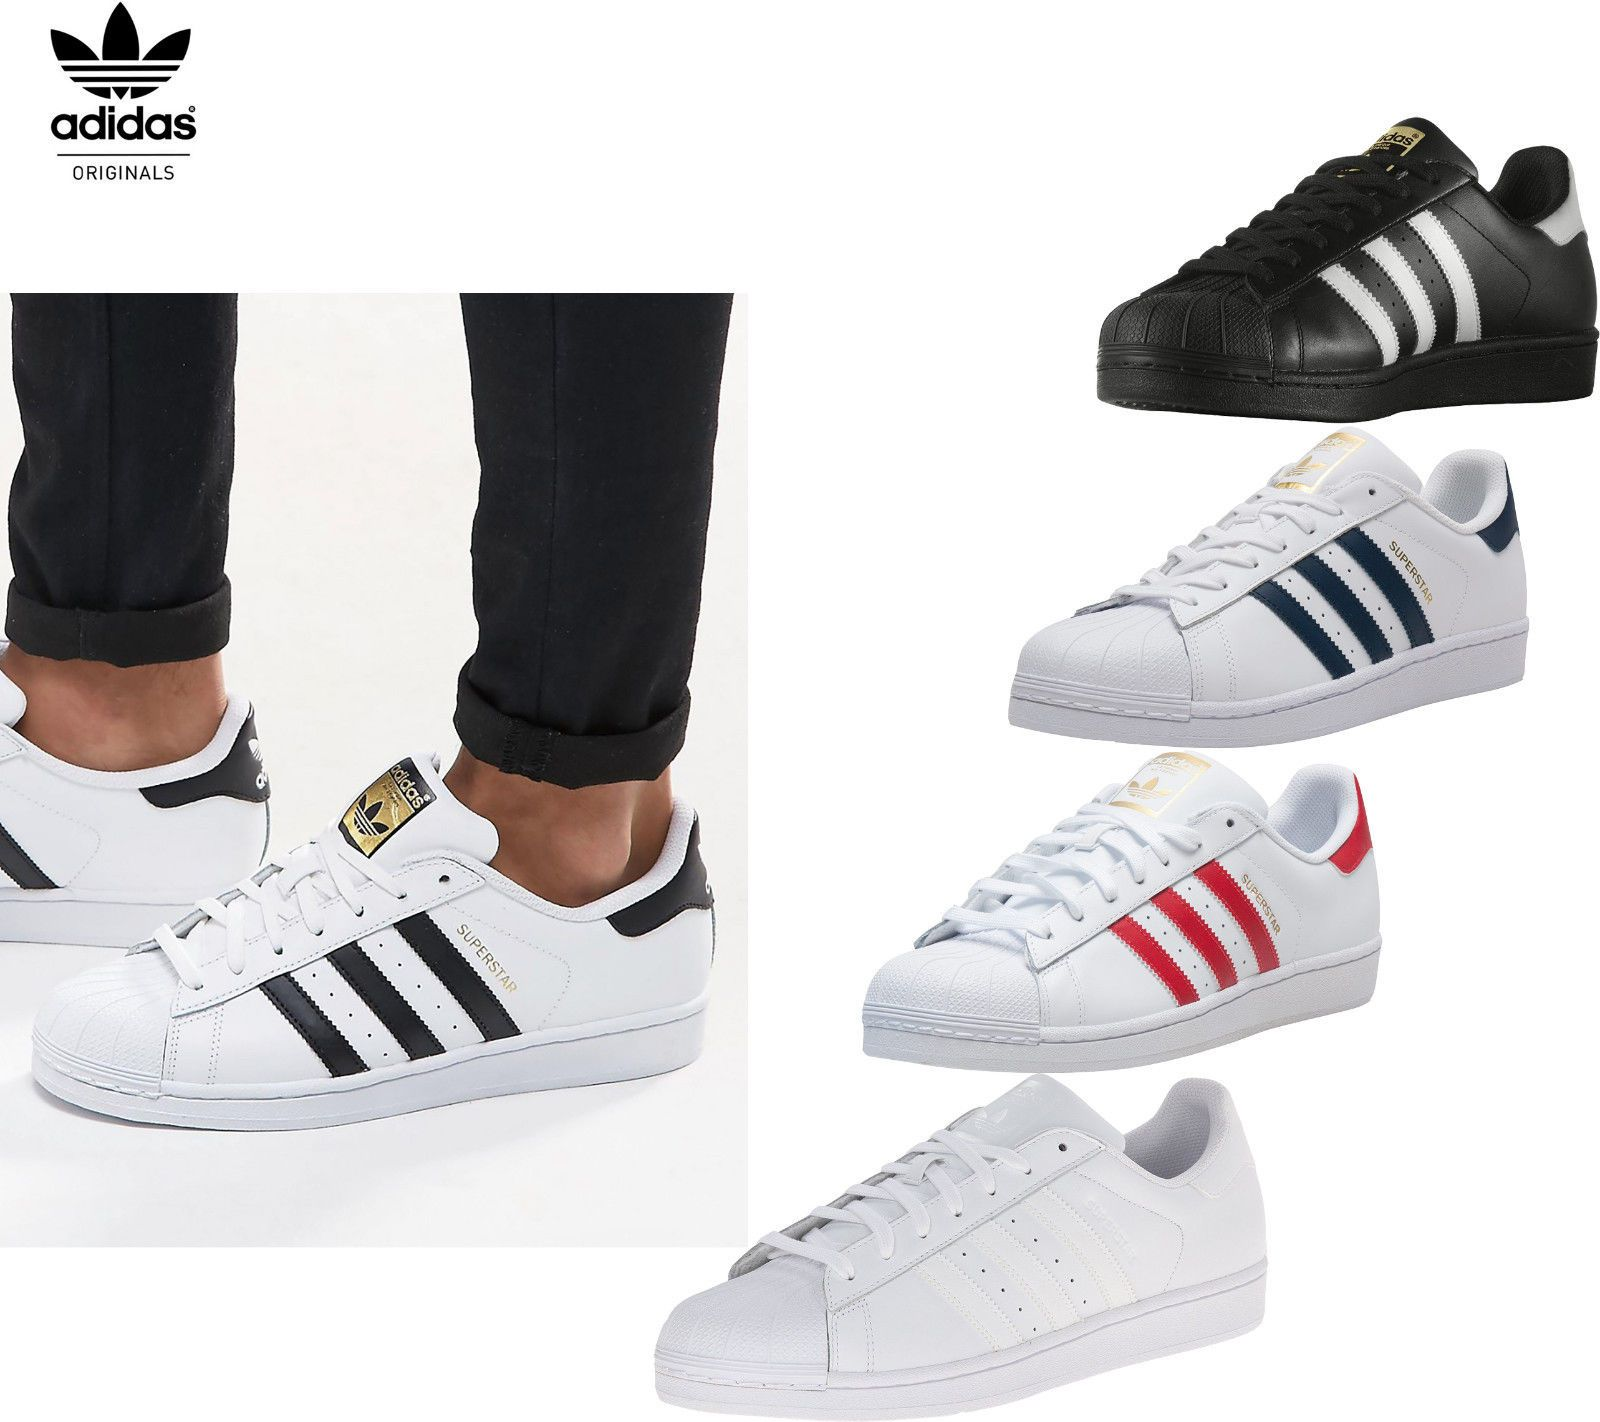 Adidas Superstar Shoes Men Sneakers Adidas Originals B27140 C77124 NEW